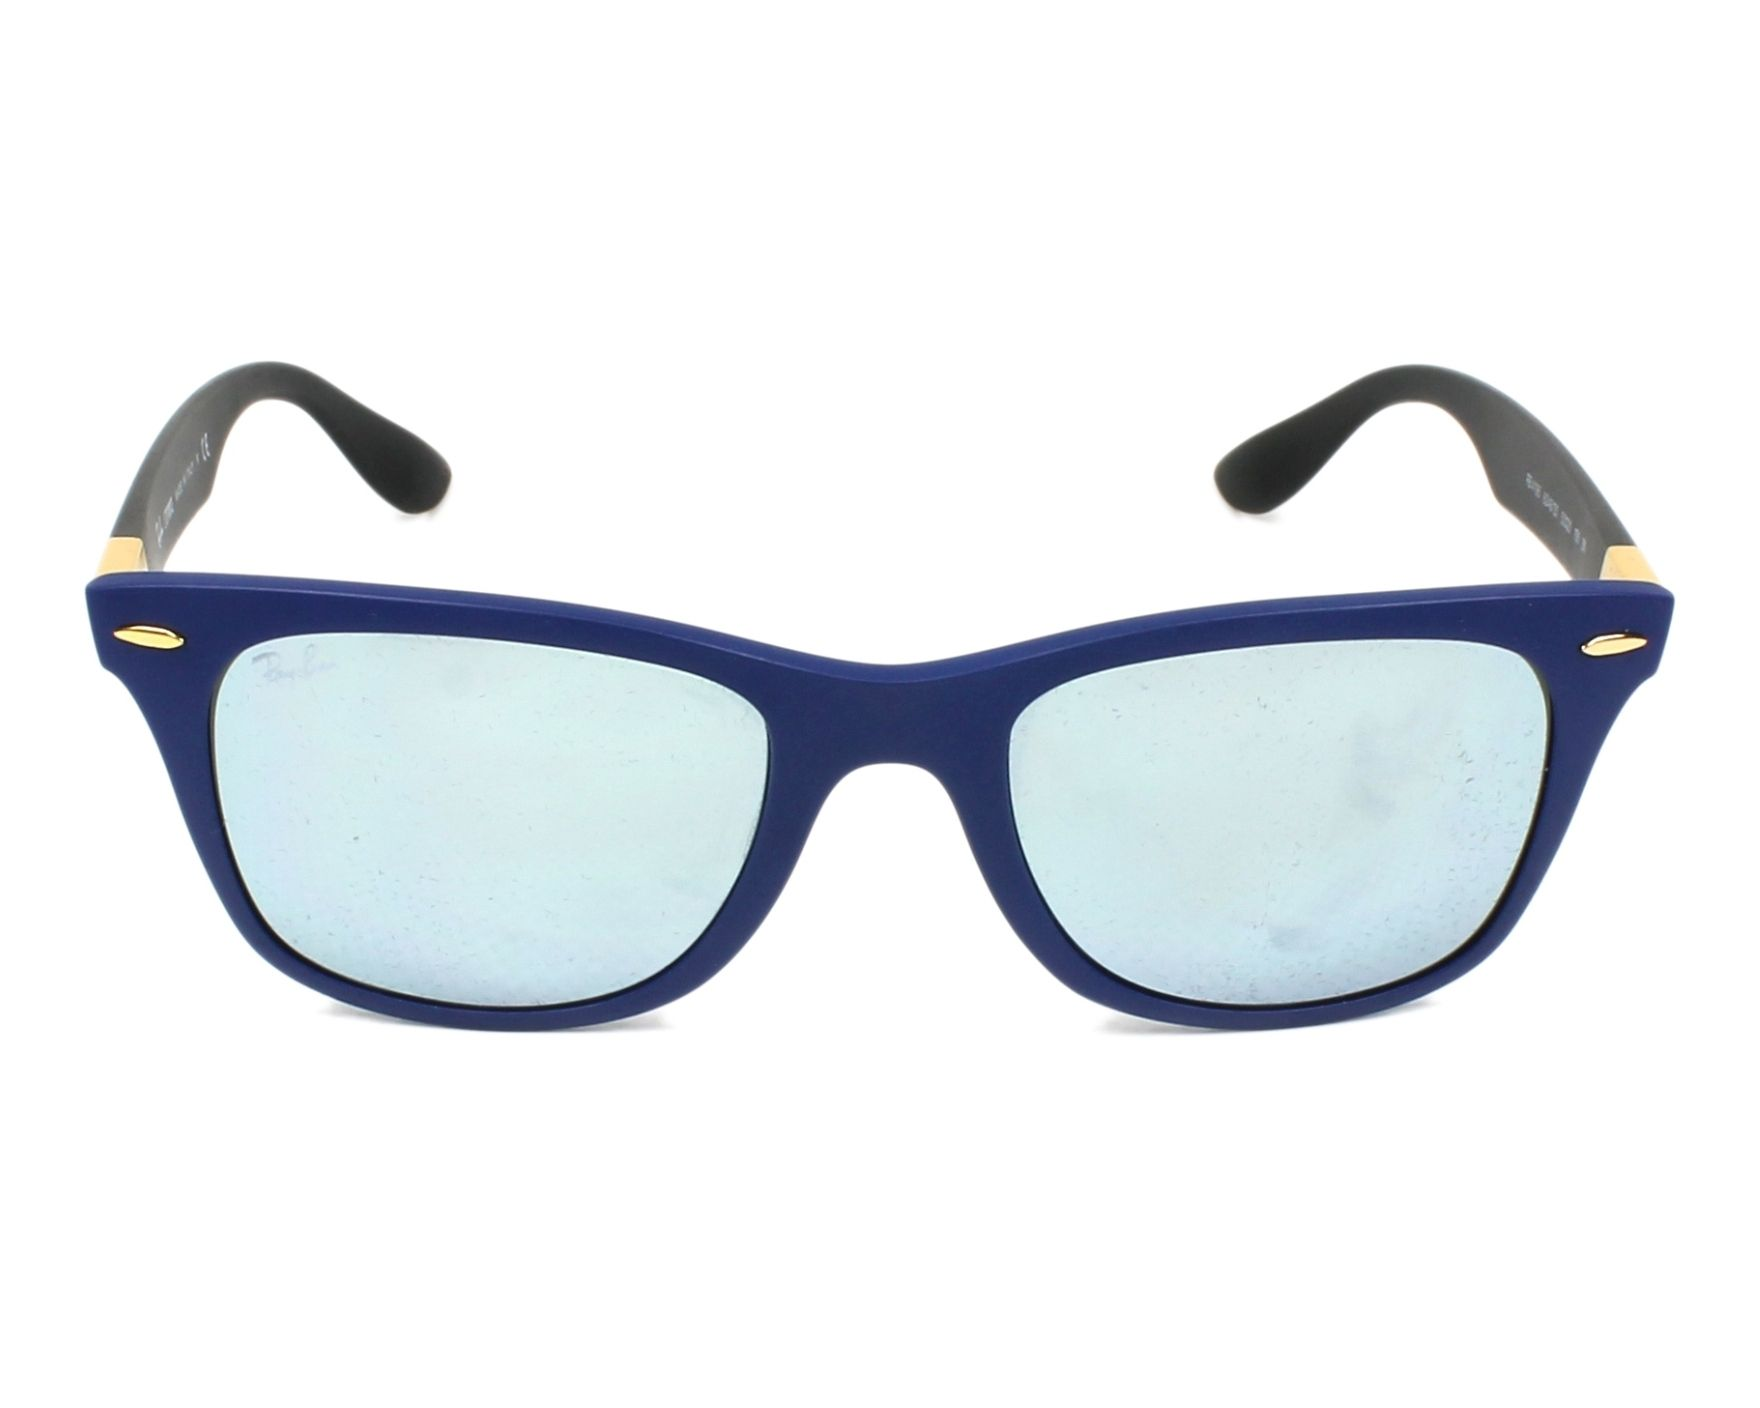 e85a8bffc8 Sunglasses Ray-Ban RB-4195 624830 52-20 Blue front view